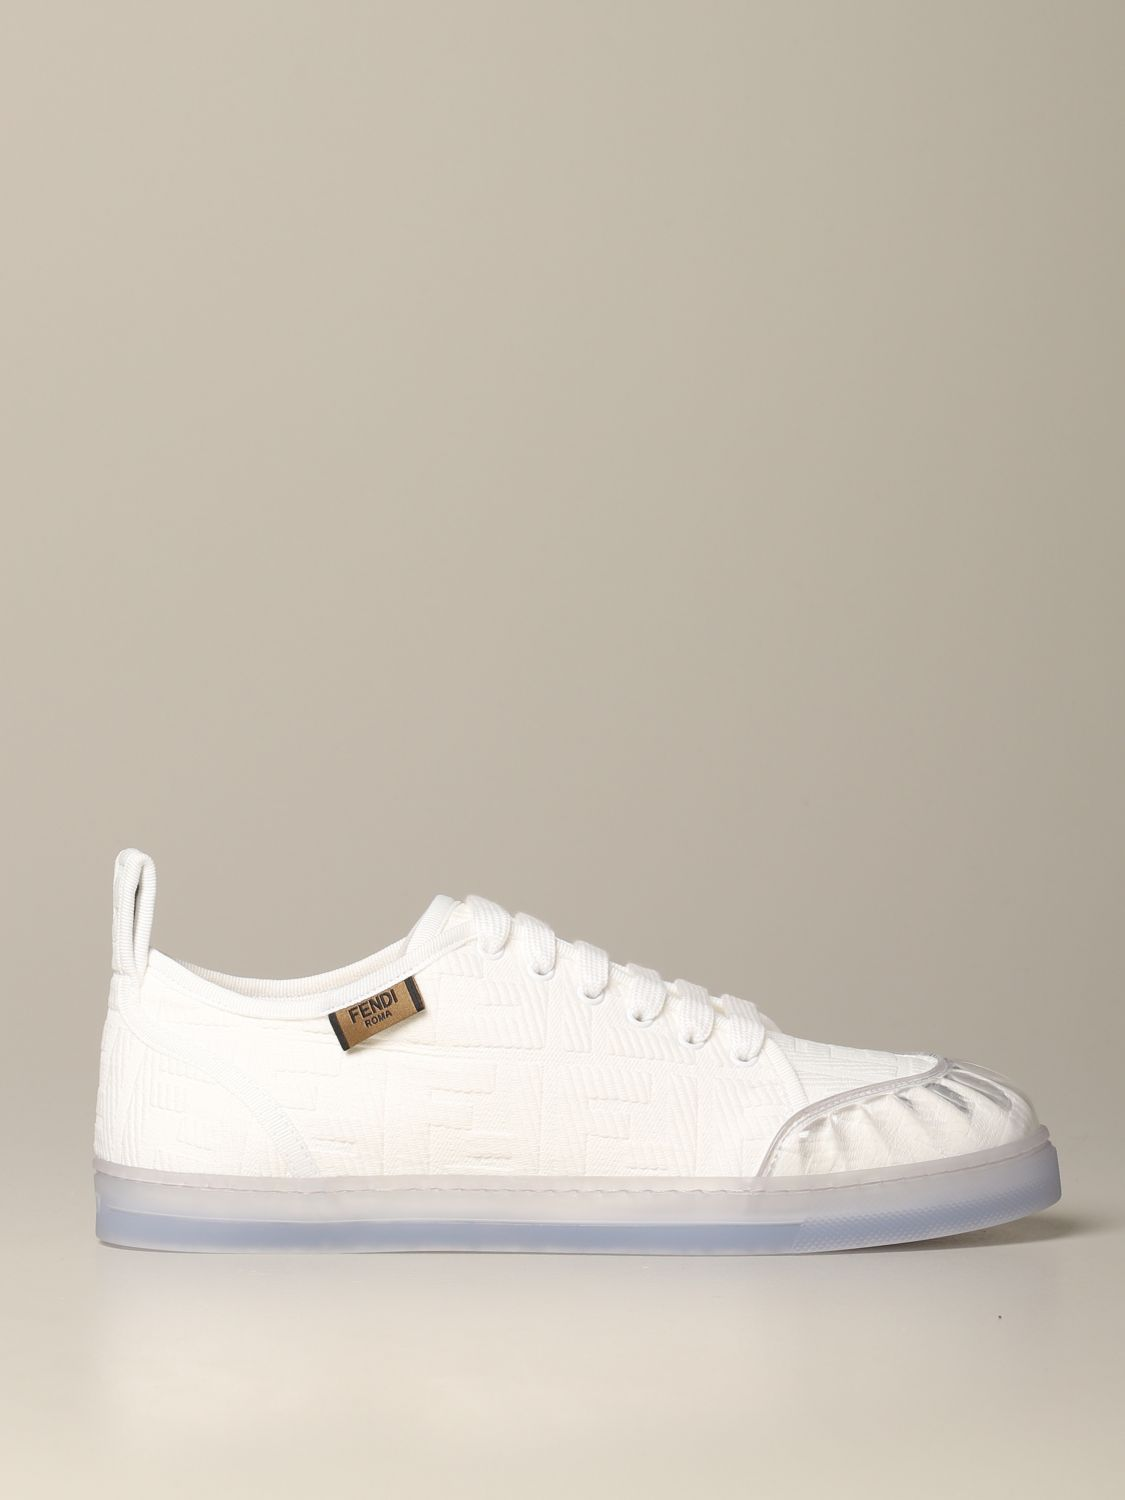 Fendi canvas sneakers with all-over FF